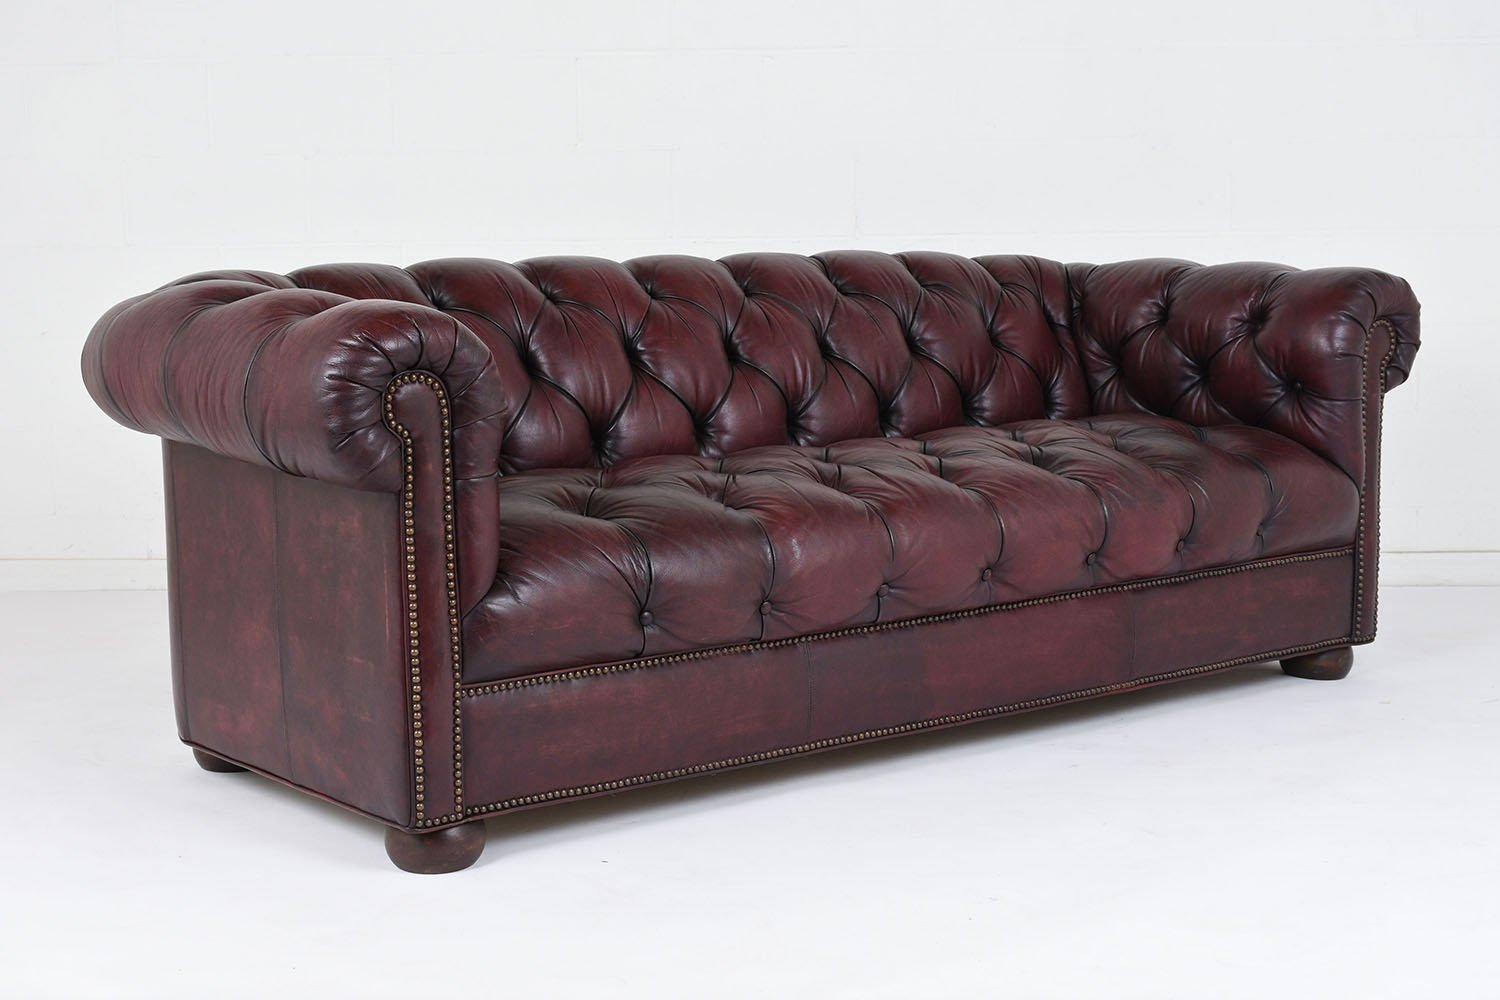 leather sectional sofa tufted c shaped set design vintage 1970s for sale at pamono